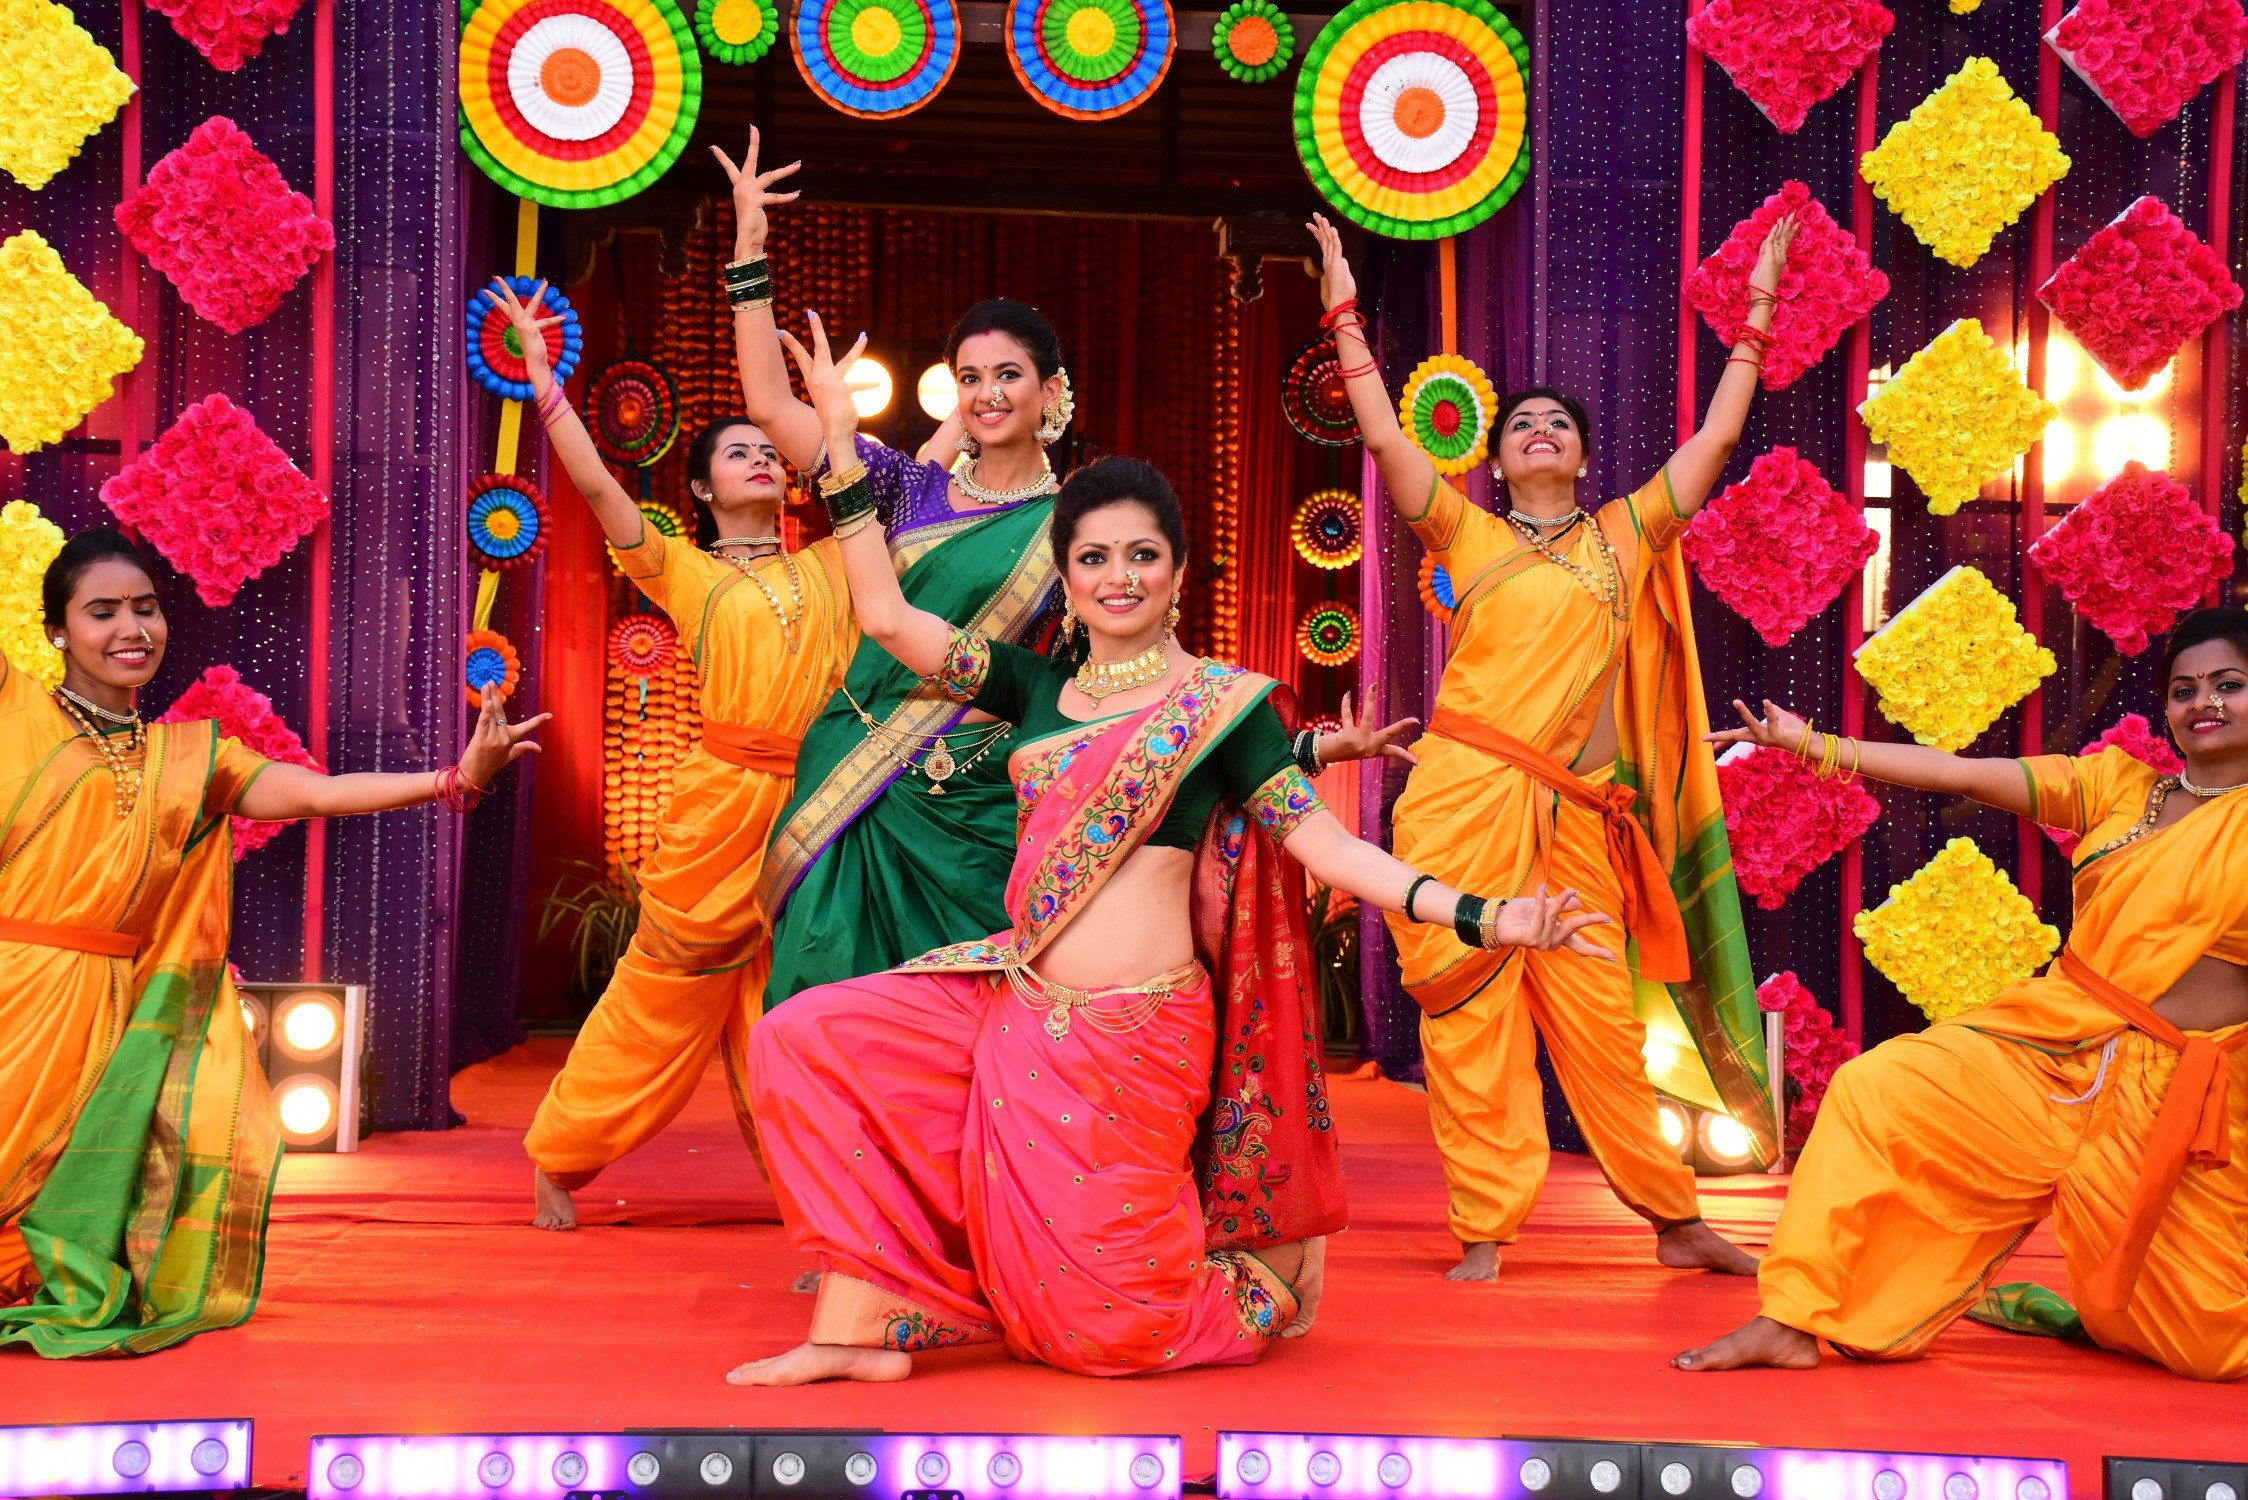 Drashti Dhami's sizzling dance performance in Colors' Gathbandhan